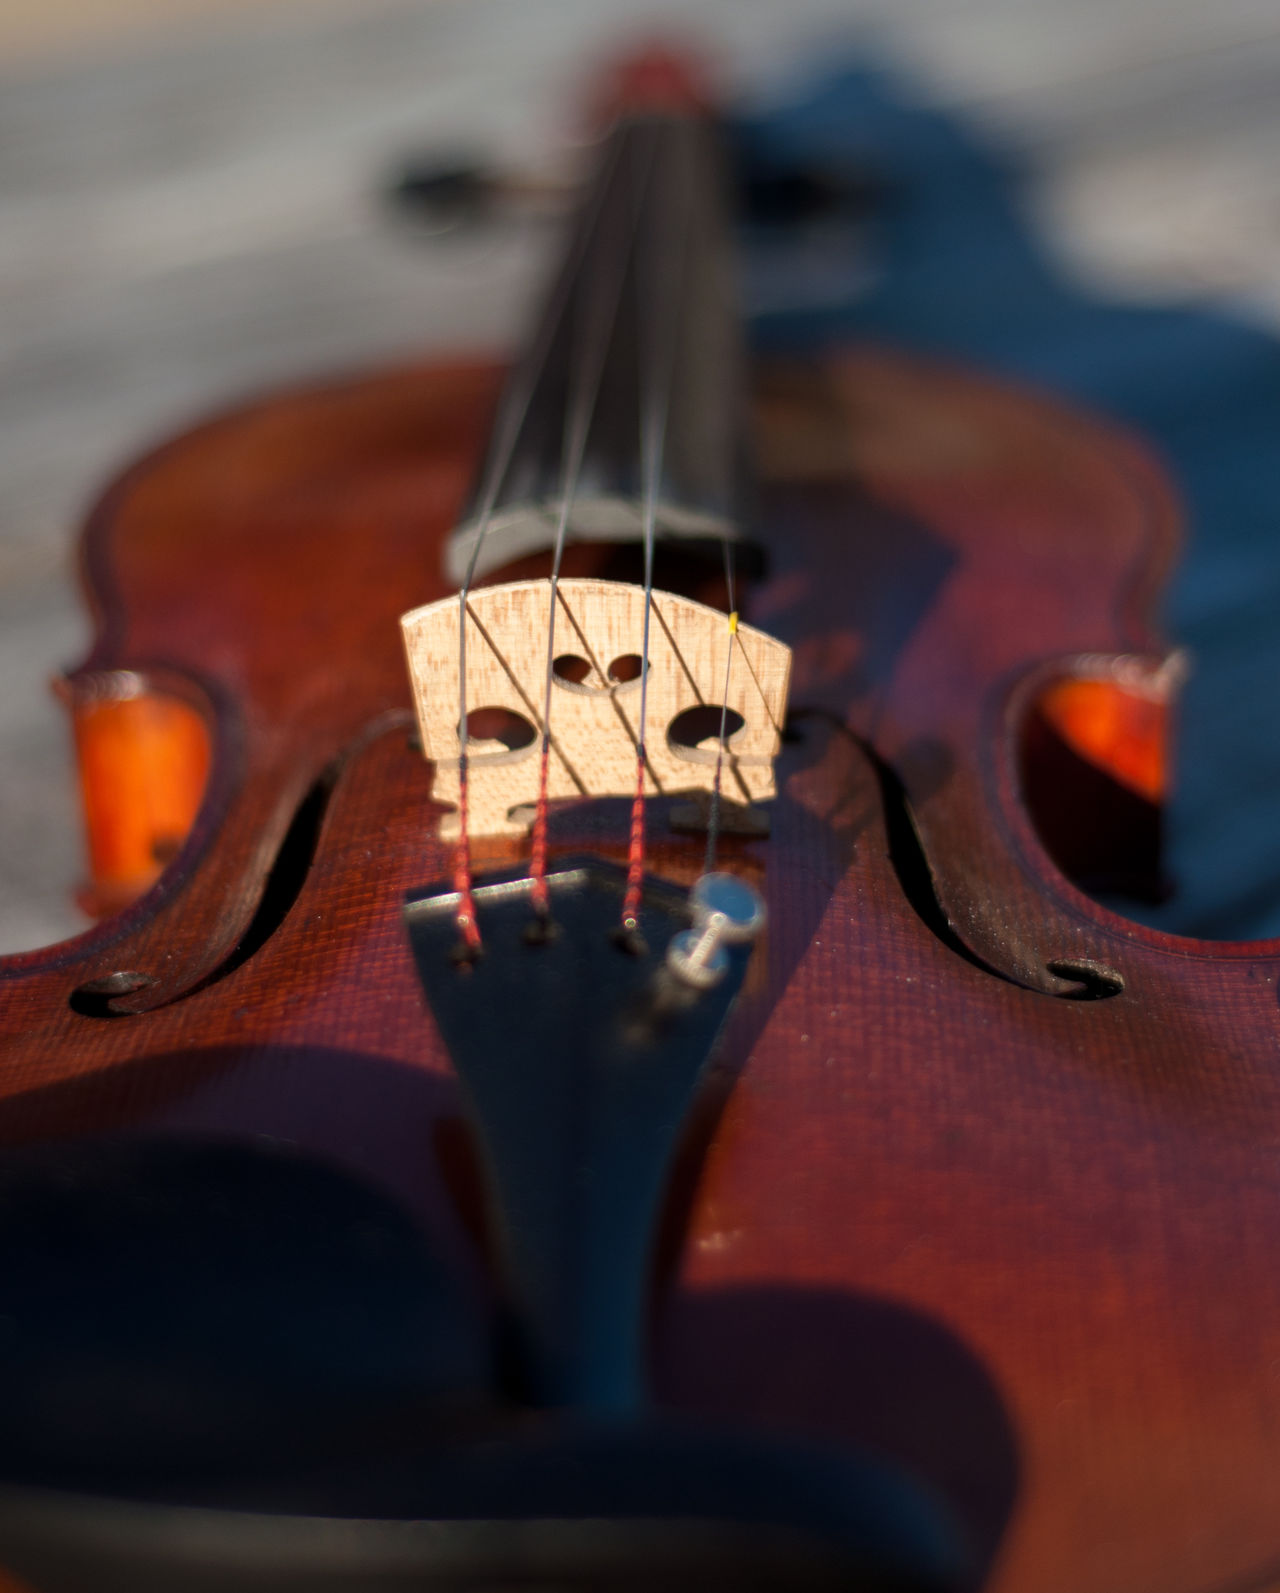 I started playing the violin in 6th grade as a part of a school orchestra program. I've had this particular instrument since 2002. The instrument is French made circa 1910-1920. I hope you enjoy these photos as much as I enjoy playing my beautiful violin! Aged Wood Arts Culture And Entertainment Bridge Depth Of Field Durham NC Front Side High Angle View Music Musical Instrument Natural Beauty Outdoors Strings Sunlight Tail Piece Violin